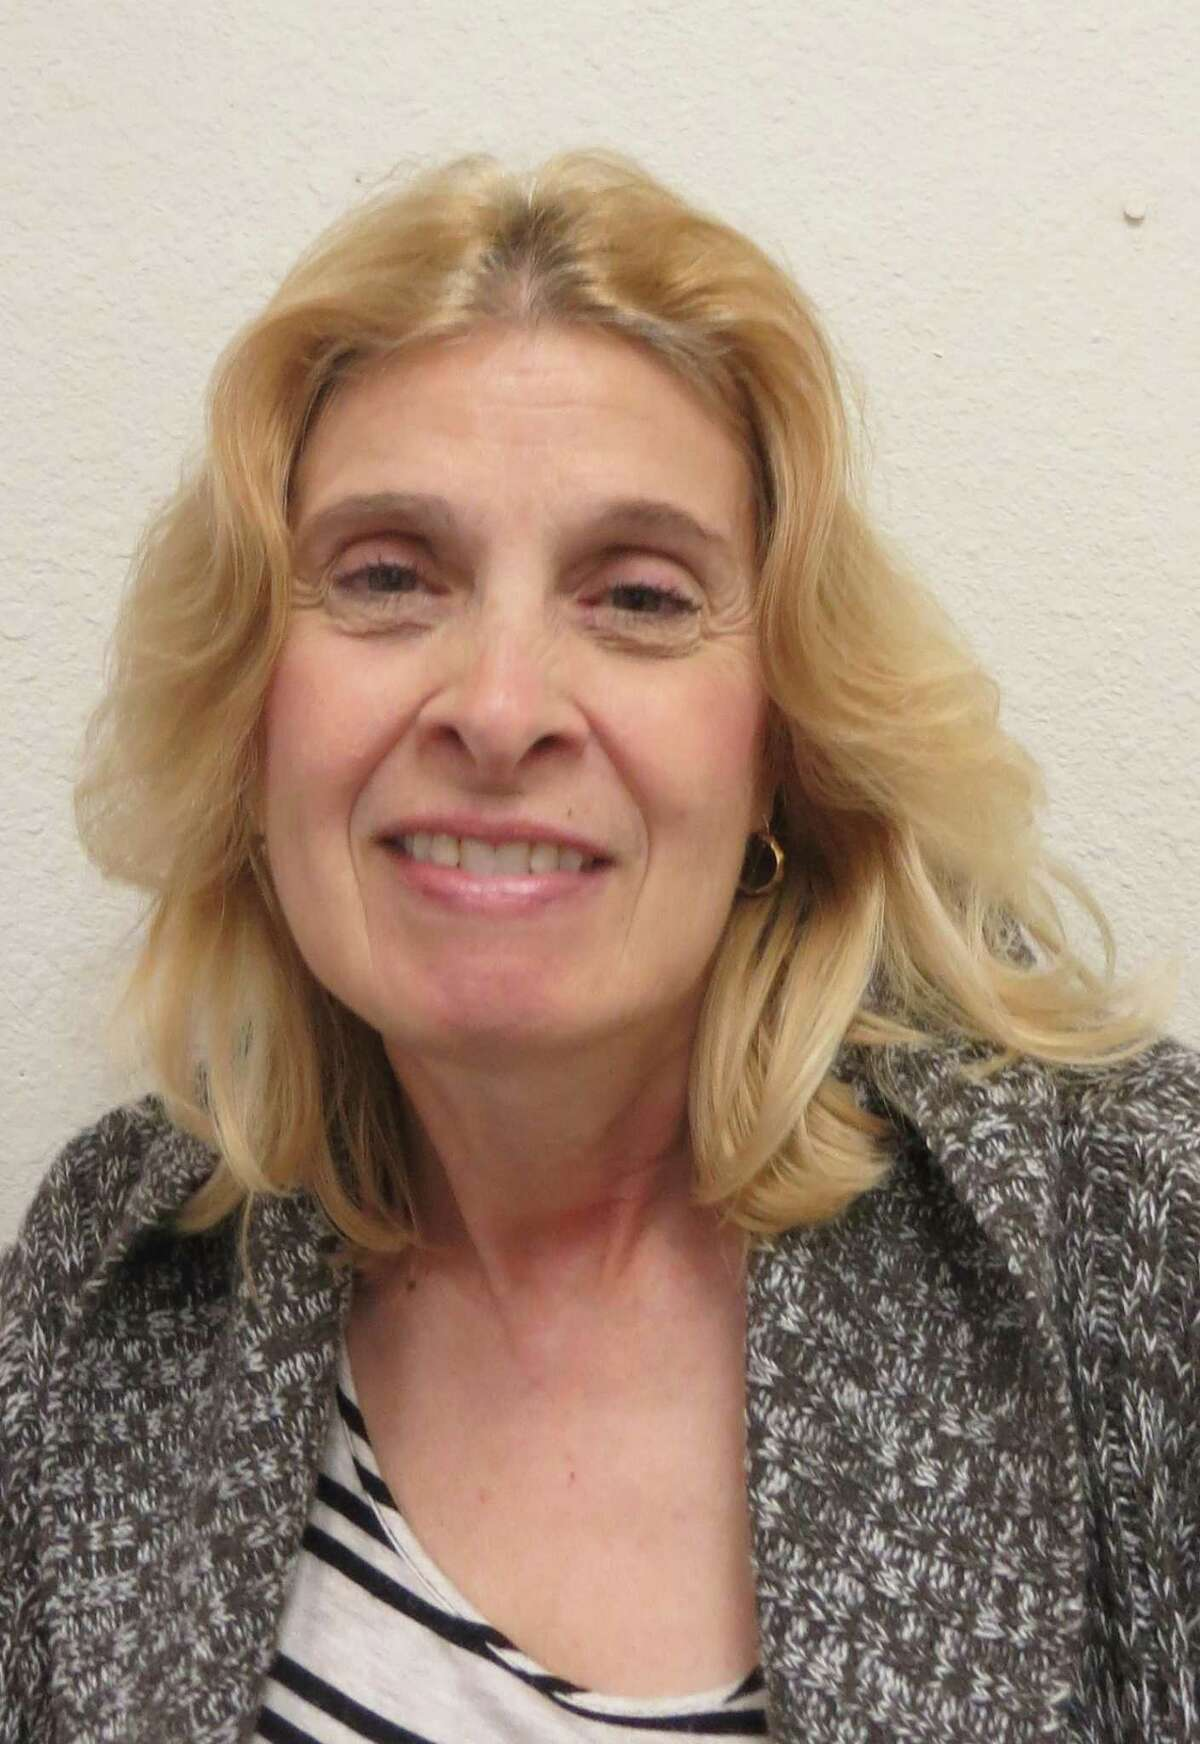 Bandera's new city administra tor, Linda Coones, is among those named in the suit.